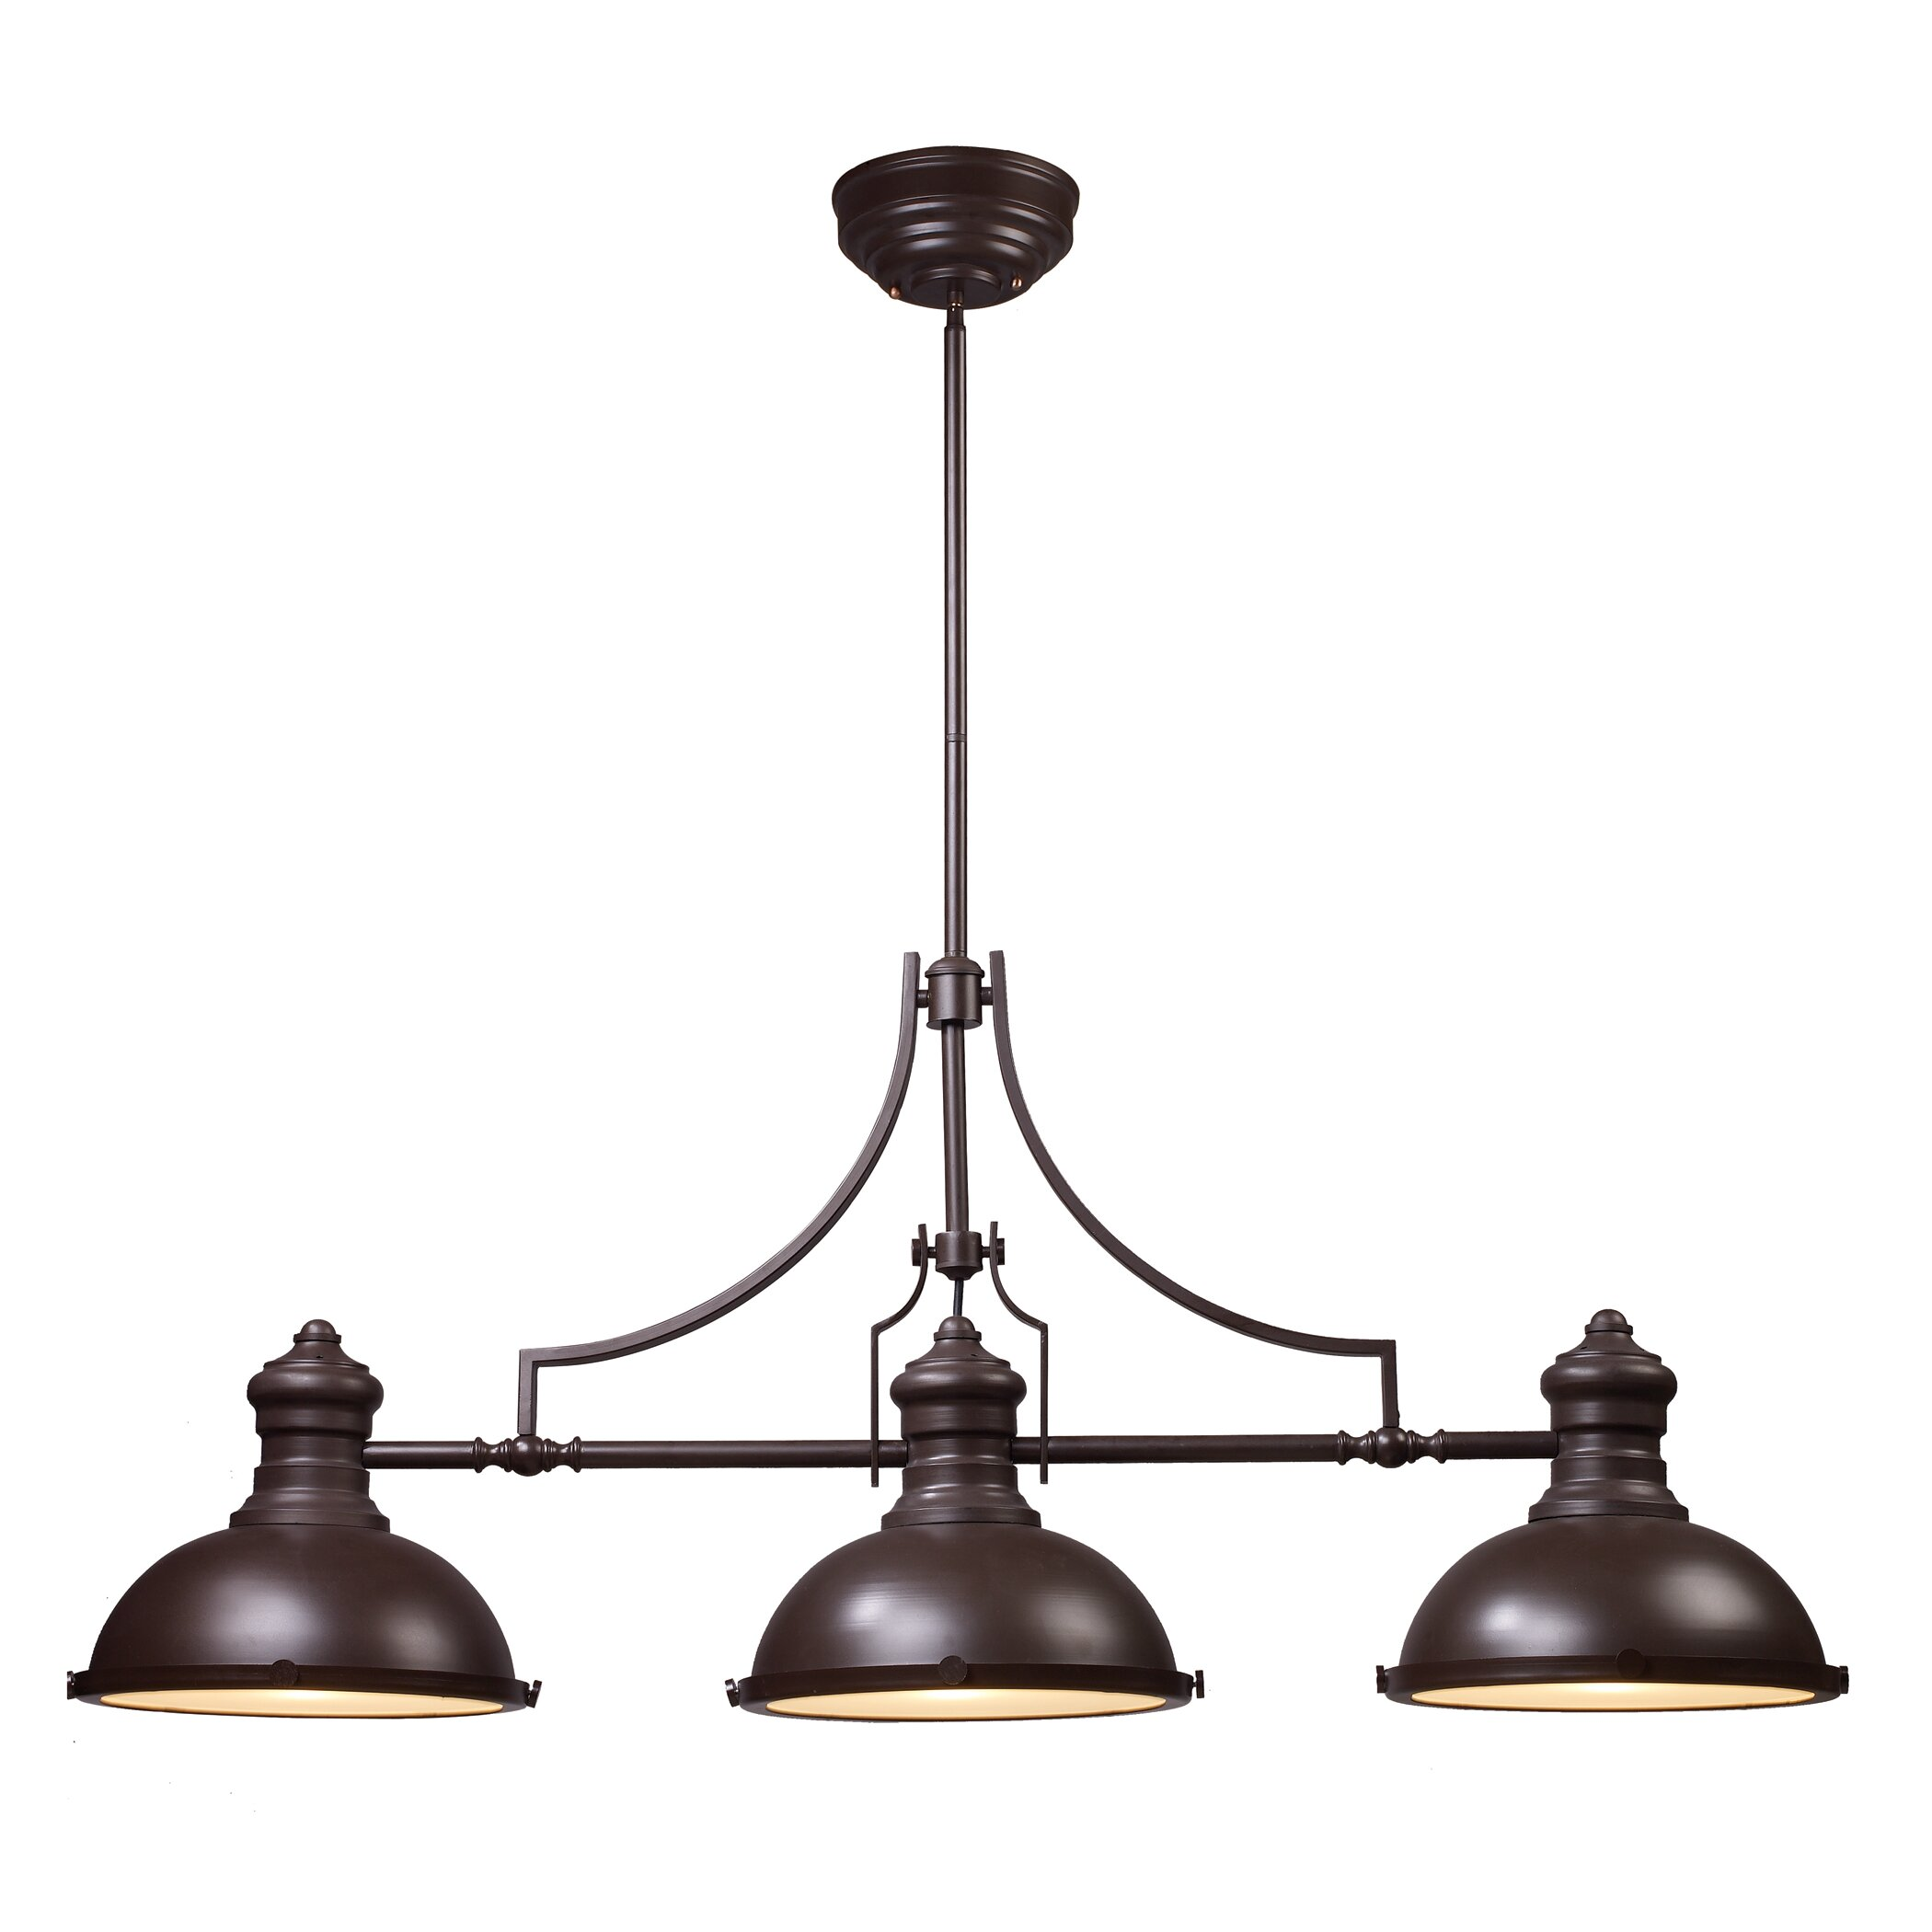 Landmark lighting chadwick 3 light kitchen island pendant for Over island light fixtures